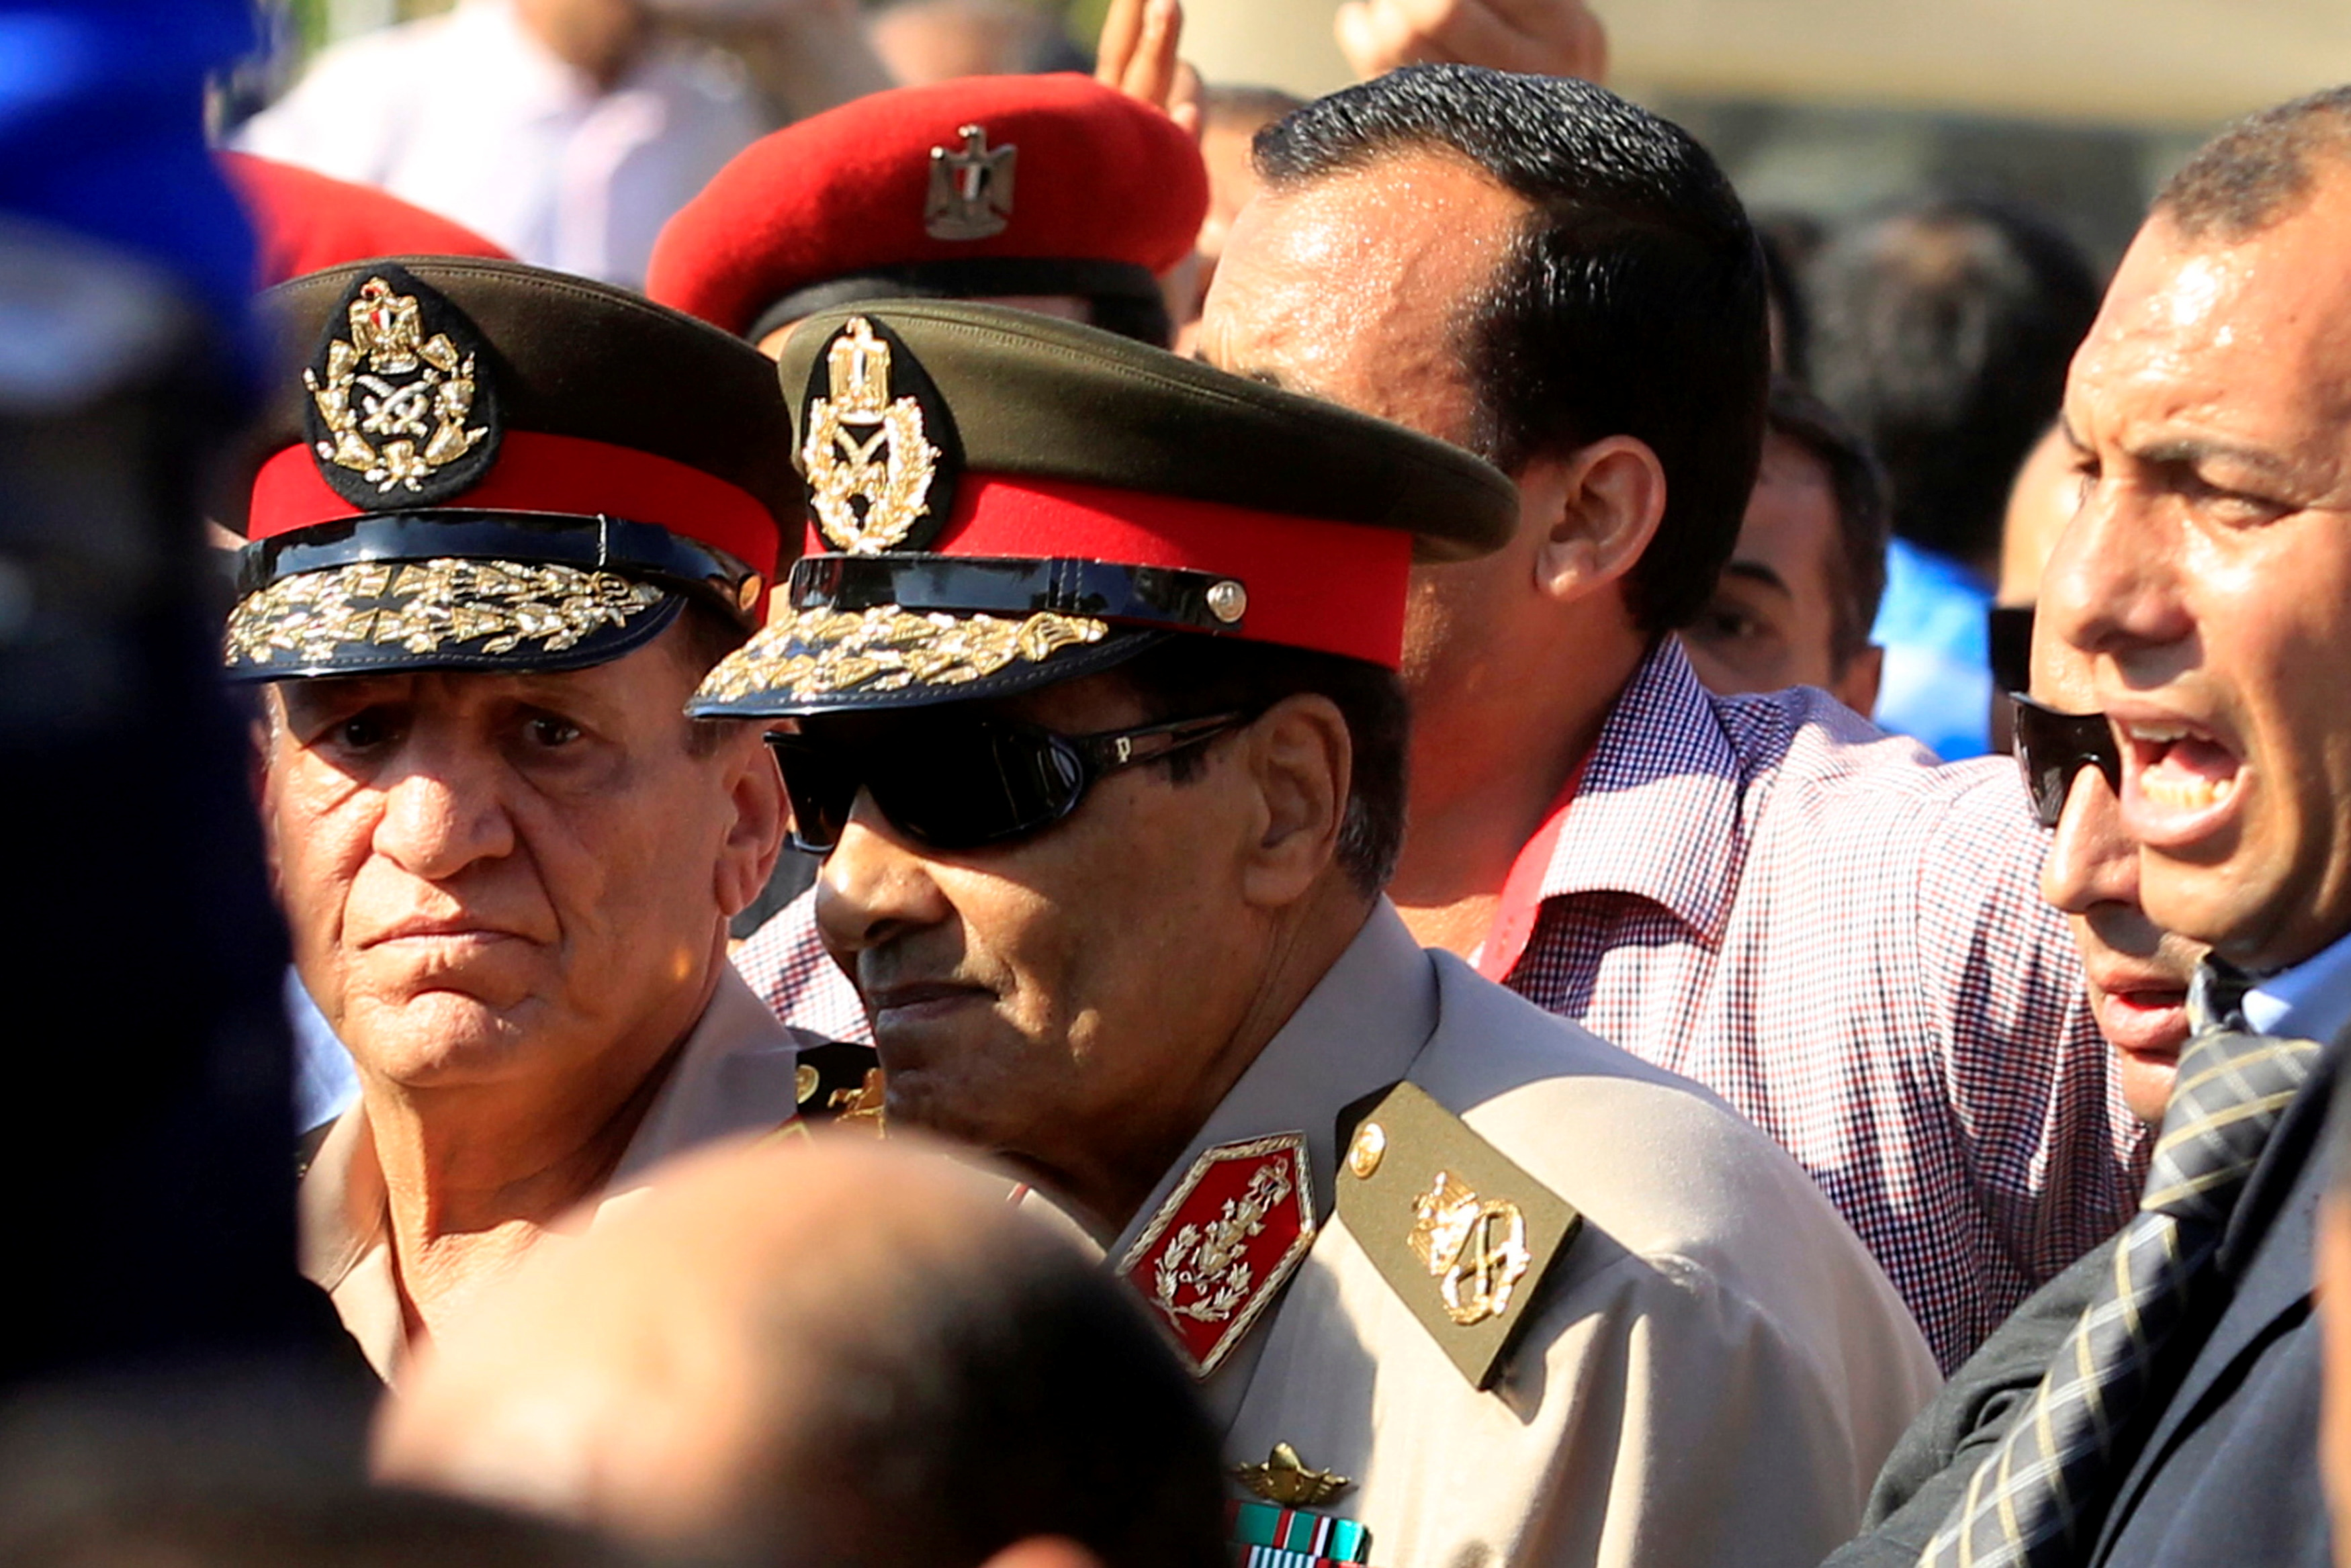 Field Marshal Hussein Tantawi (C) attends the funeral of Egypt's former intelligence chief Omar Suleiman in Cairo July 21, 2012. REUTERS /Mohamed Abd El Ghany/File Photo